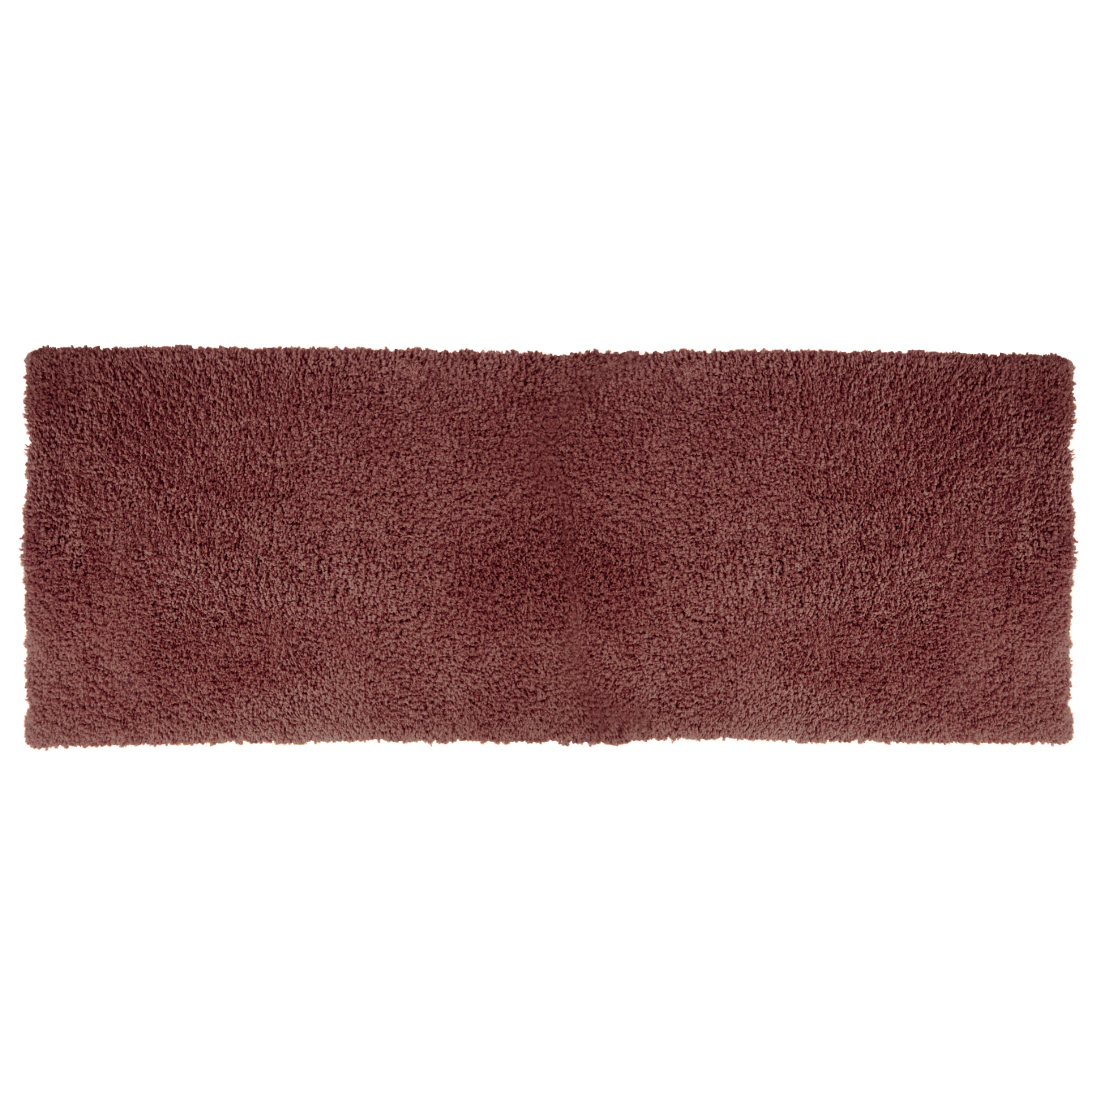 Nora Chenille Bath Mats in Brown Colour by Living Essence